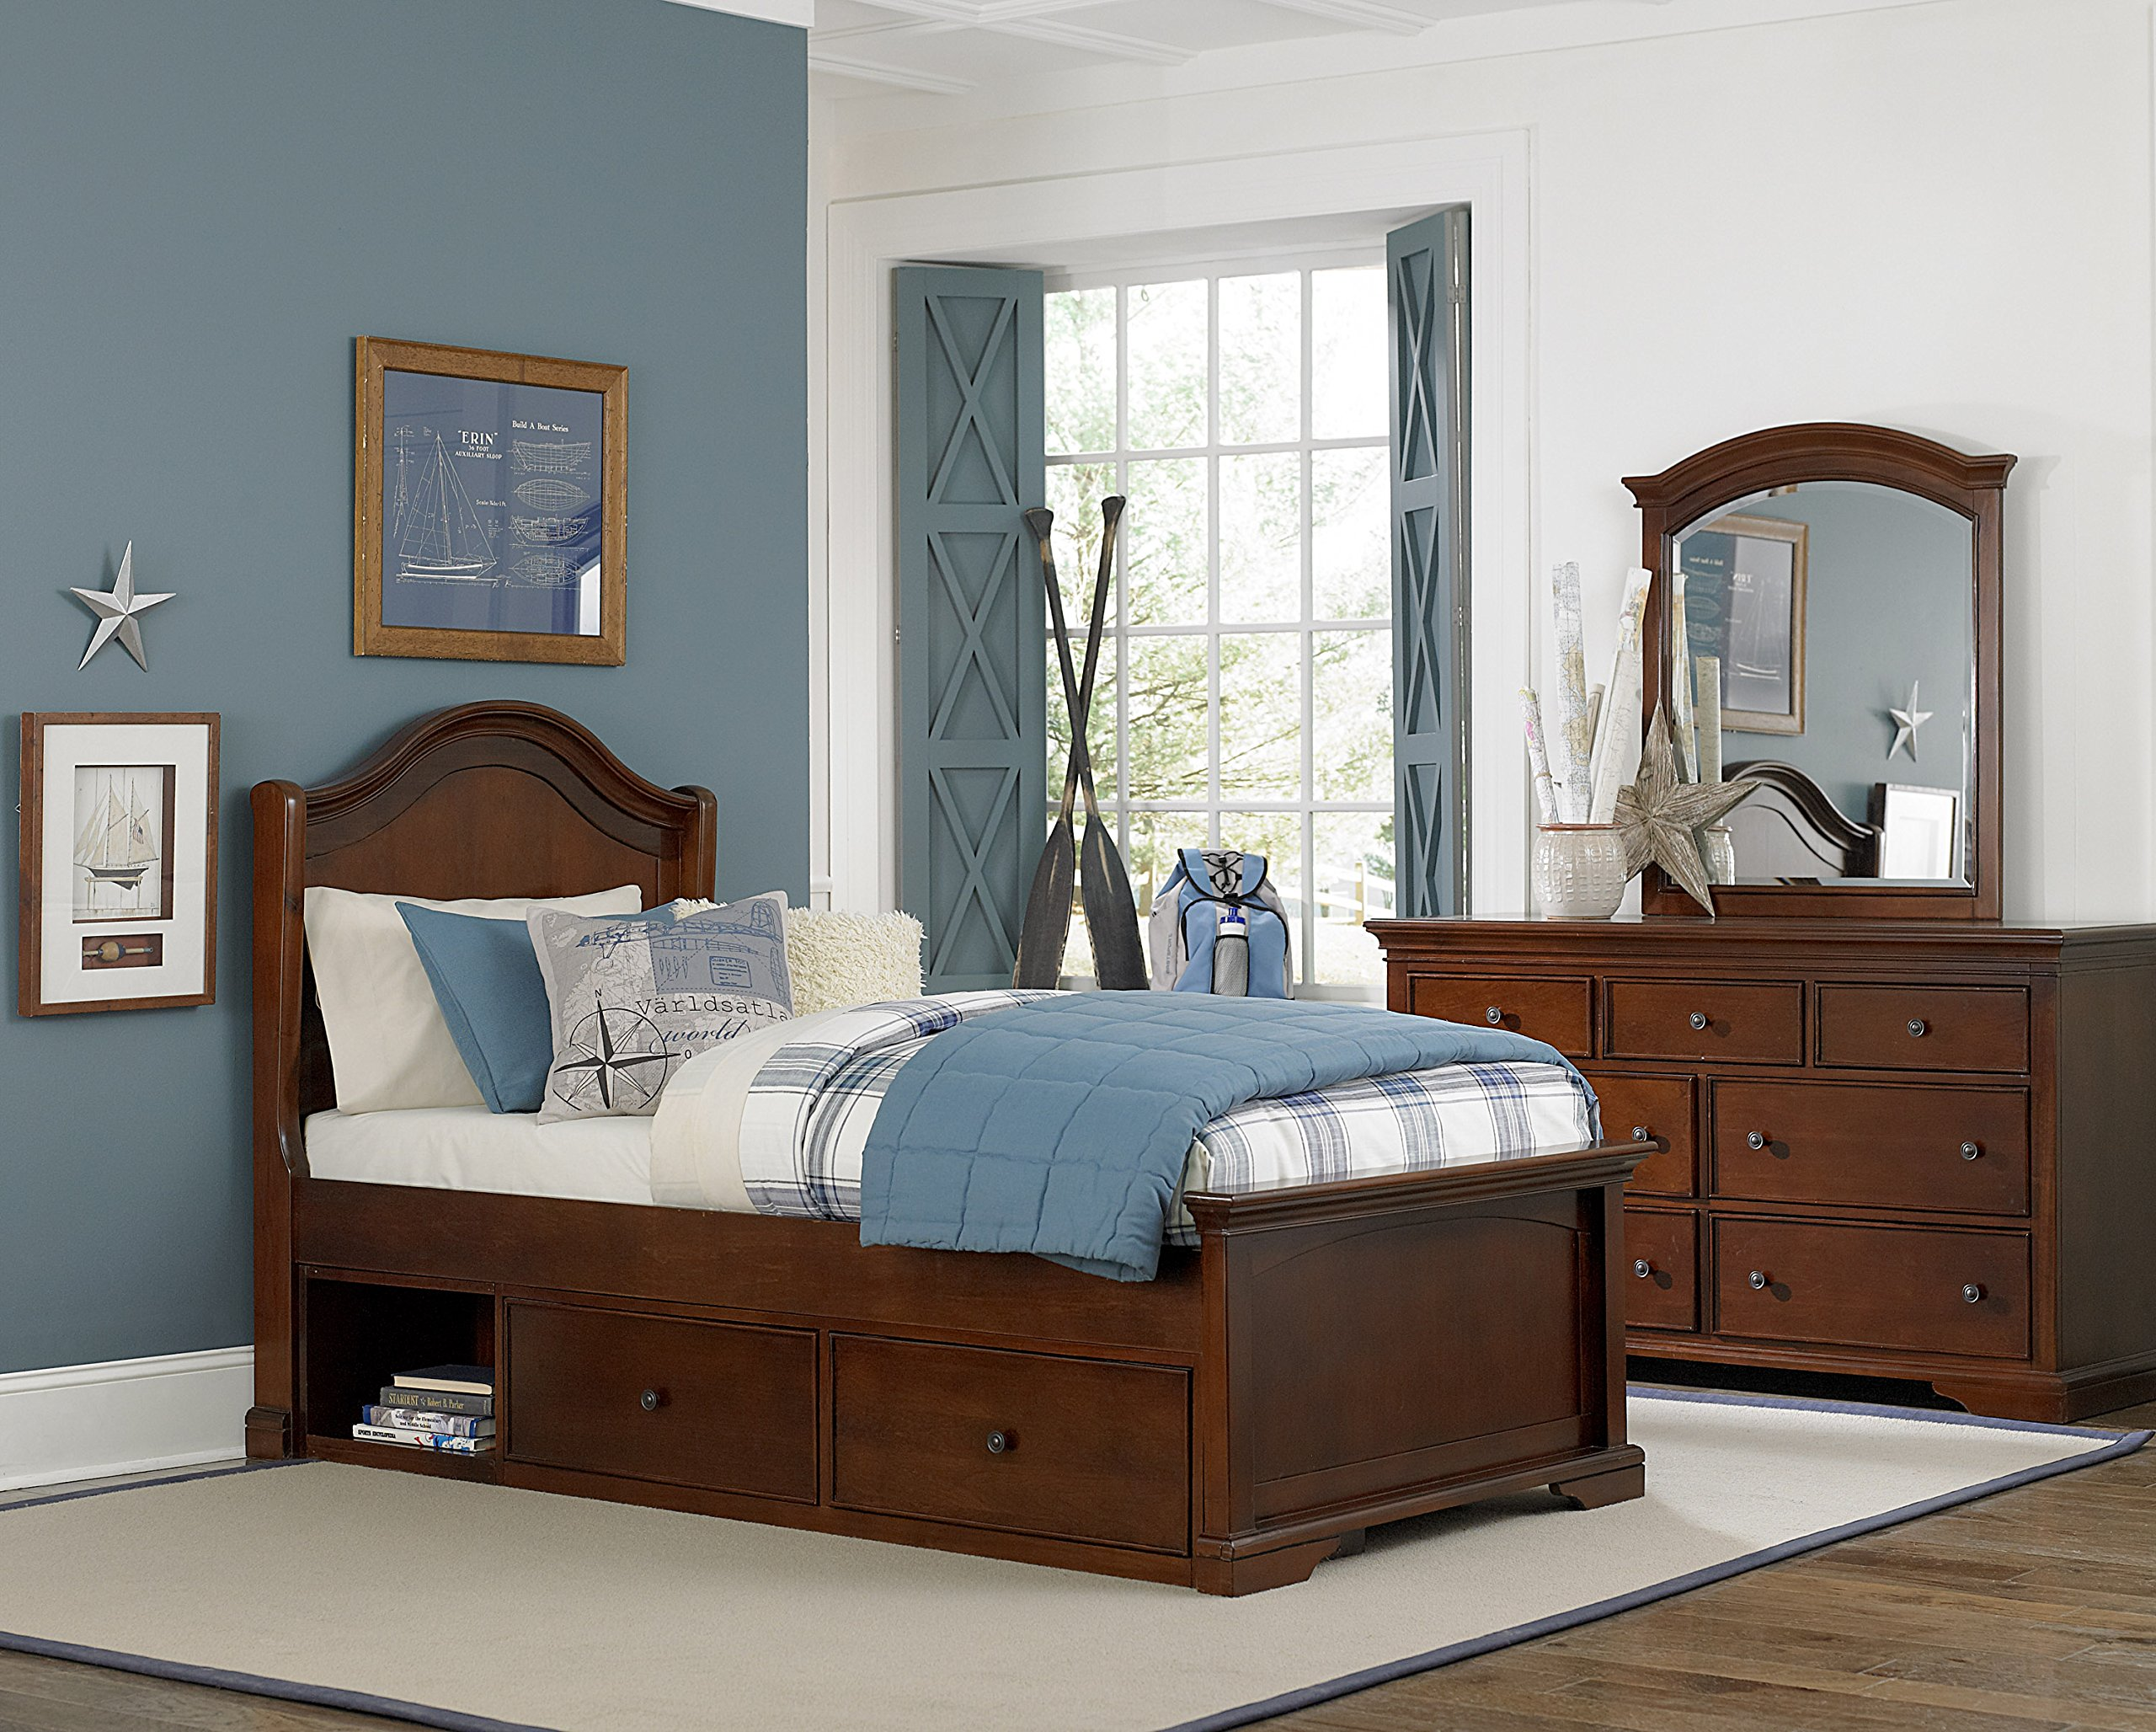 NE Kids Walnut Street Morgan Arch Bed with Storage, Chestnut, Twin